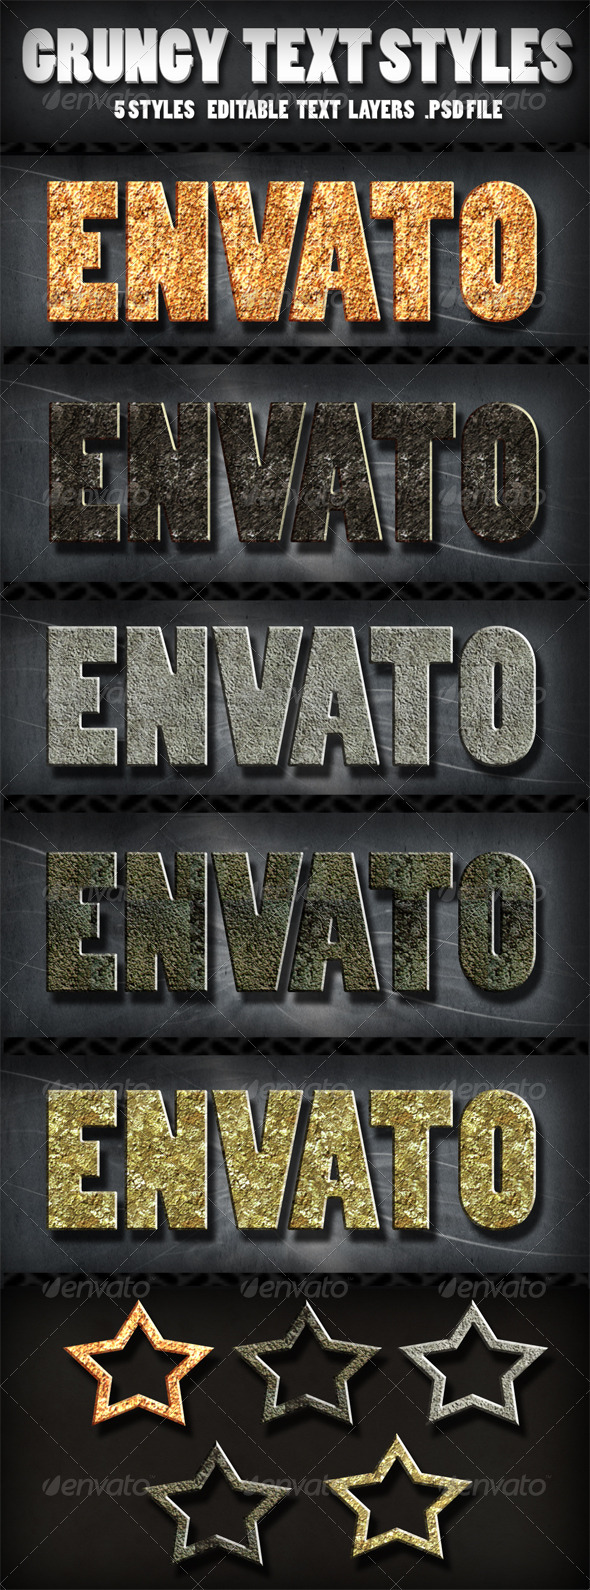 Grungy Text Styles  - Text Effects Actions